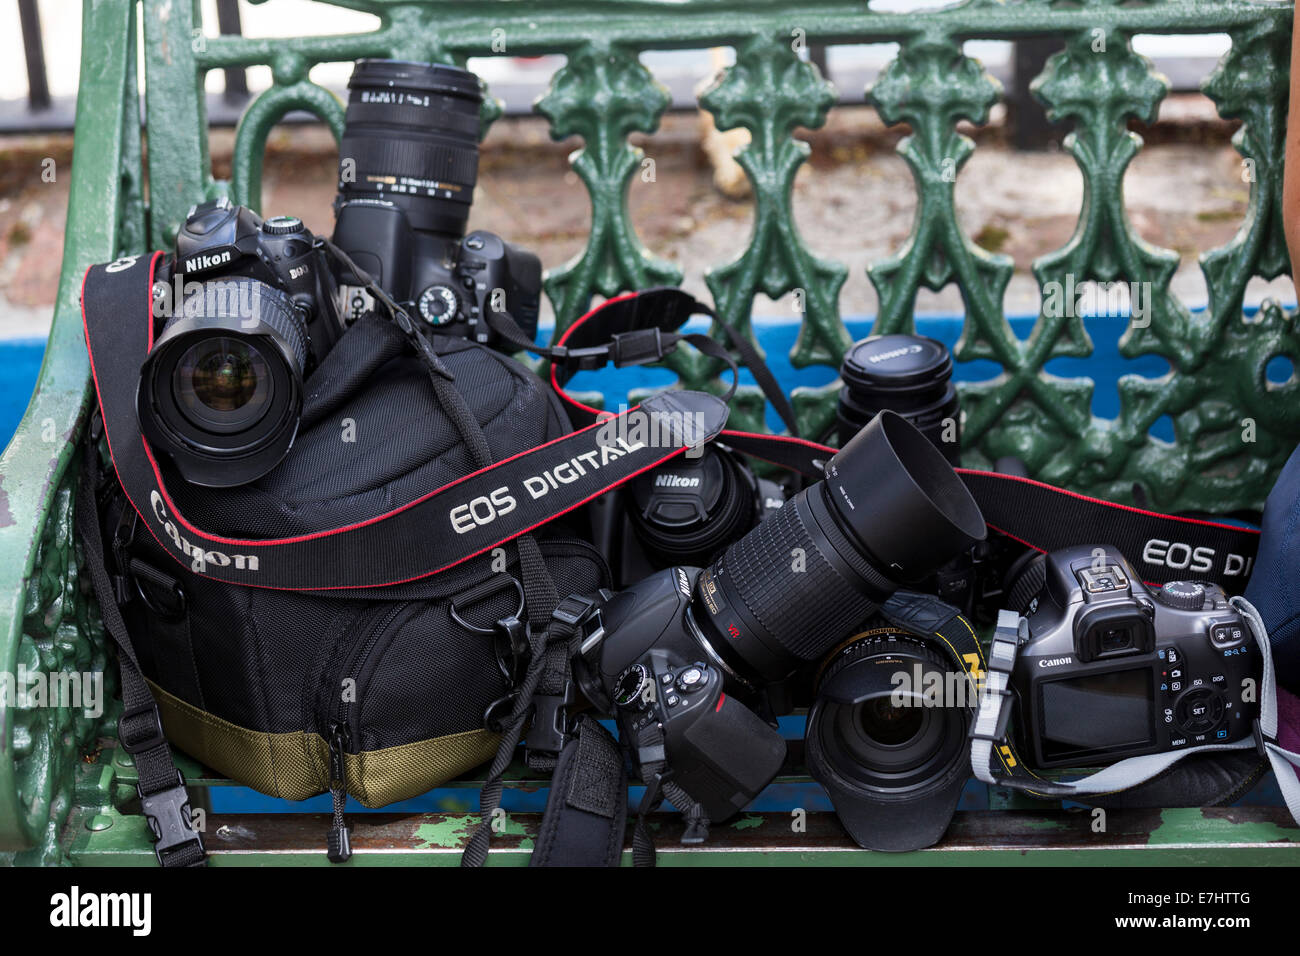 Group of SLR cameras on a green bench - Stock Image